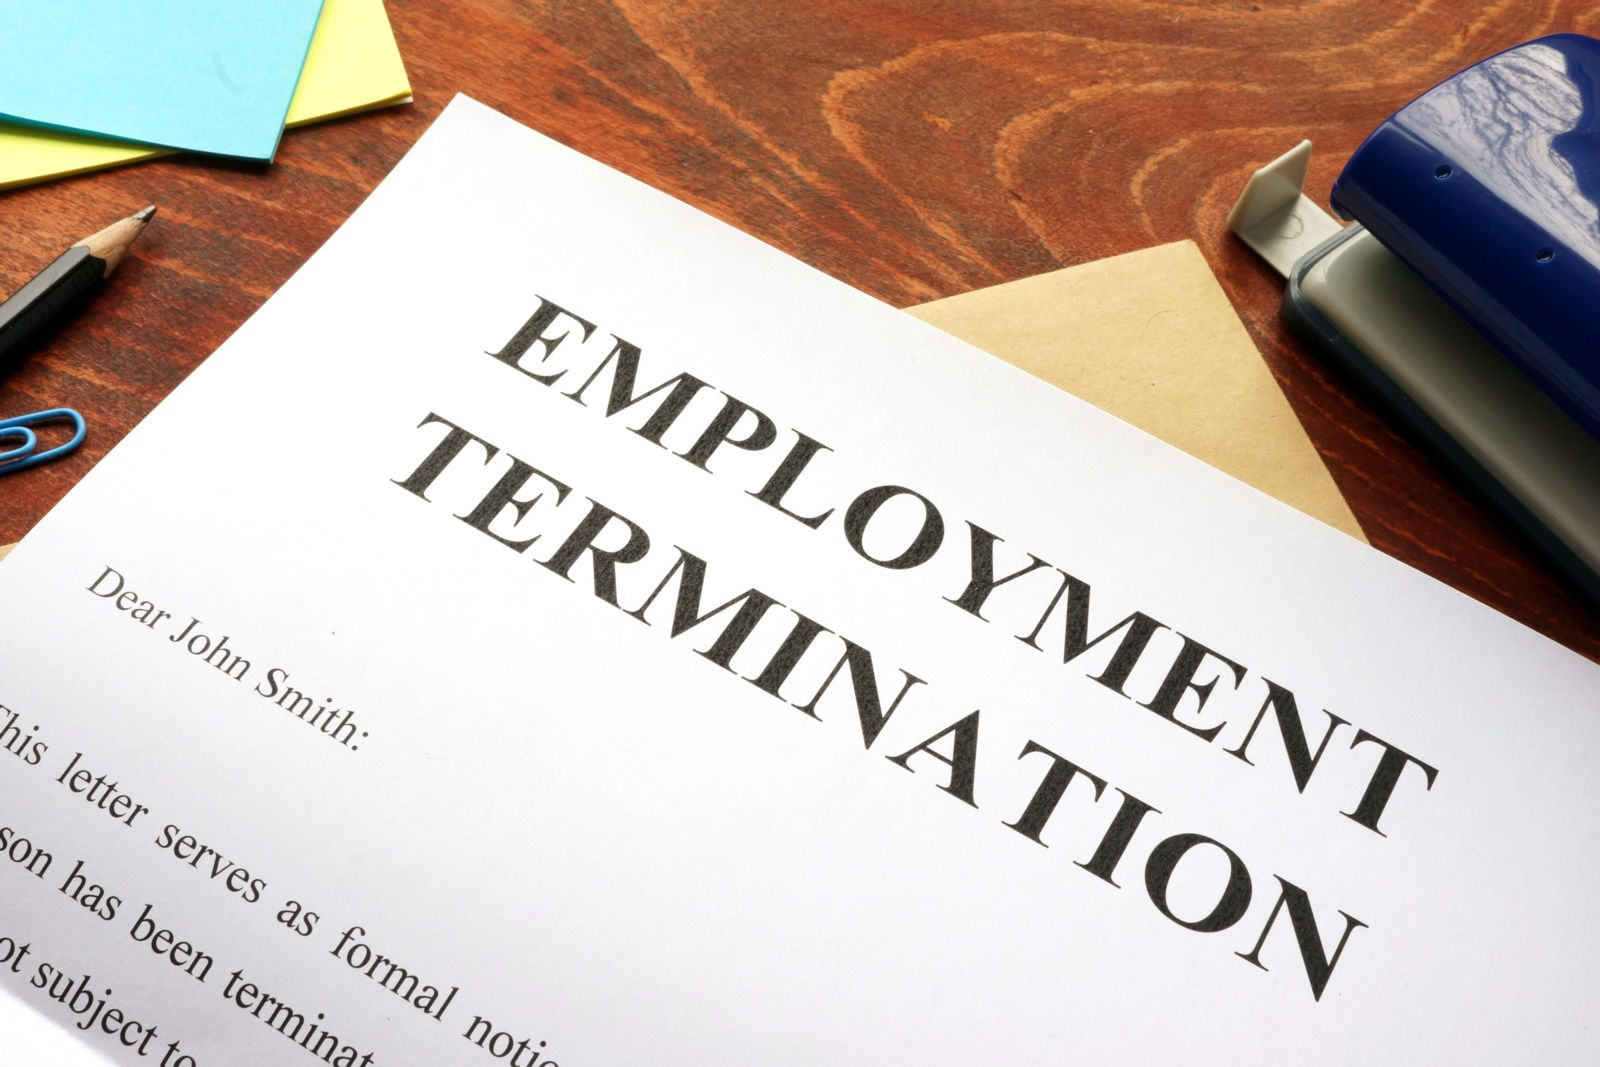 Wrongful Termination Lawyer The Hart Law Firm